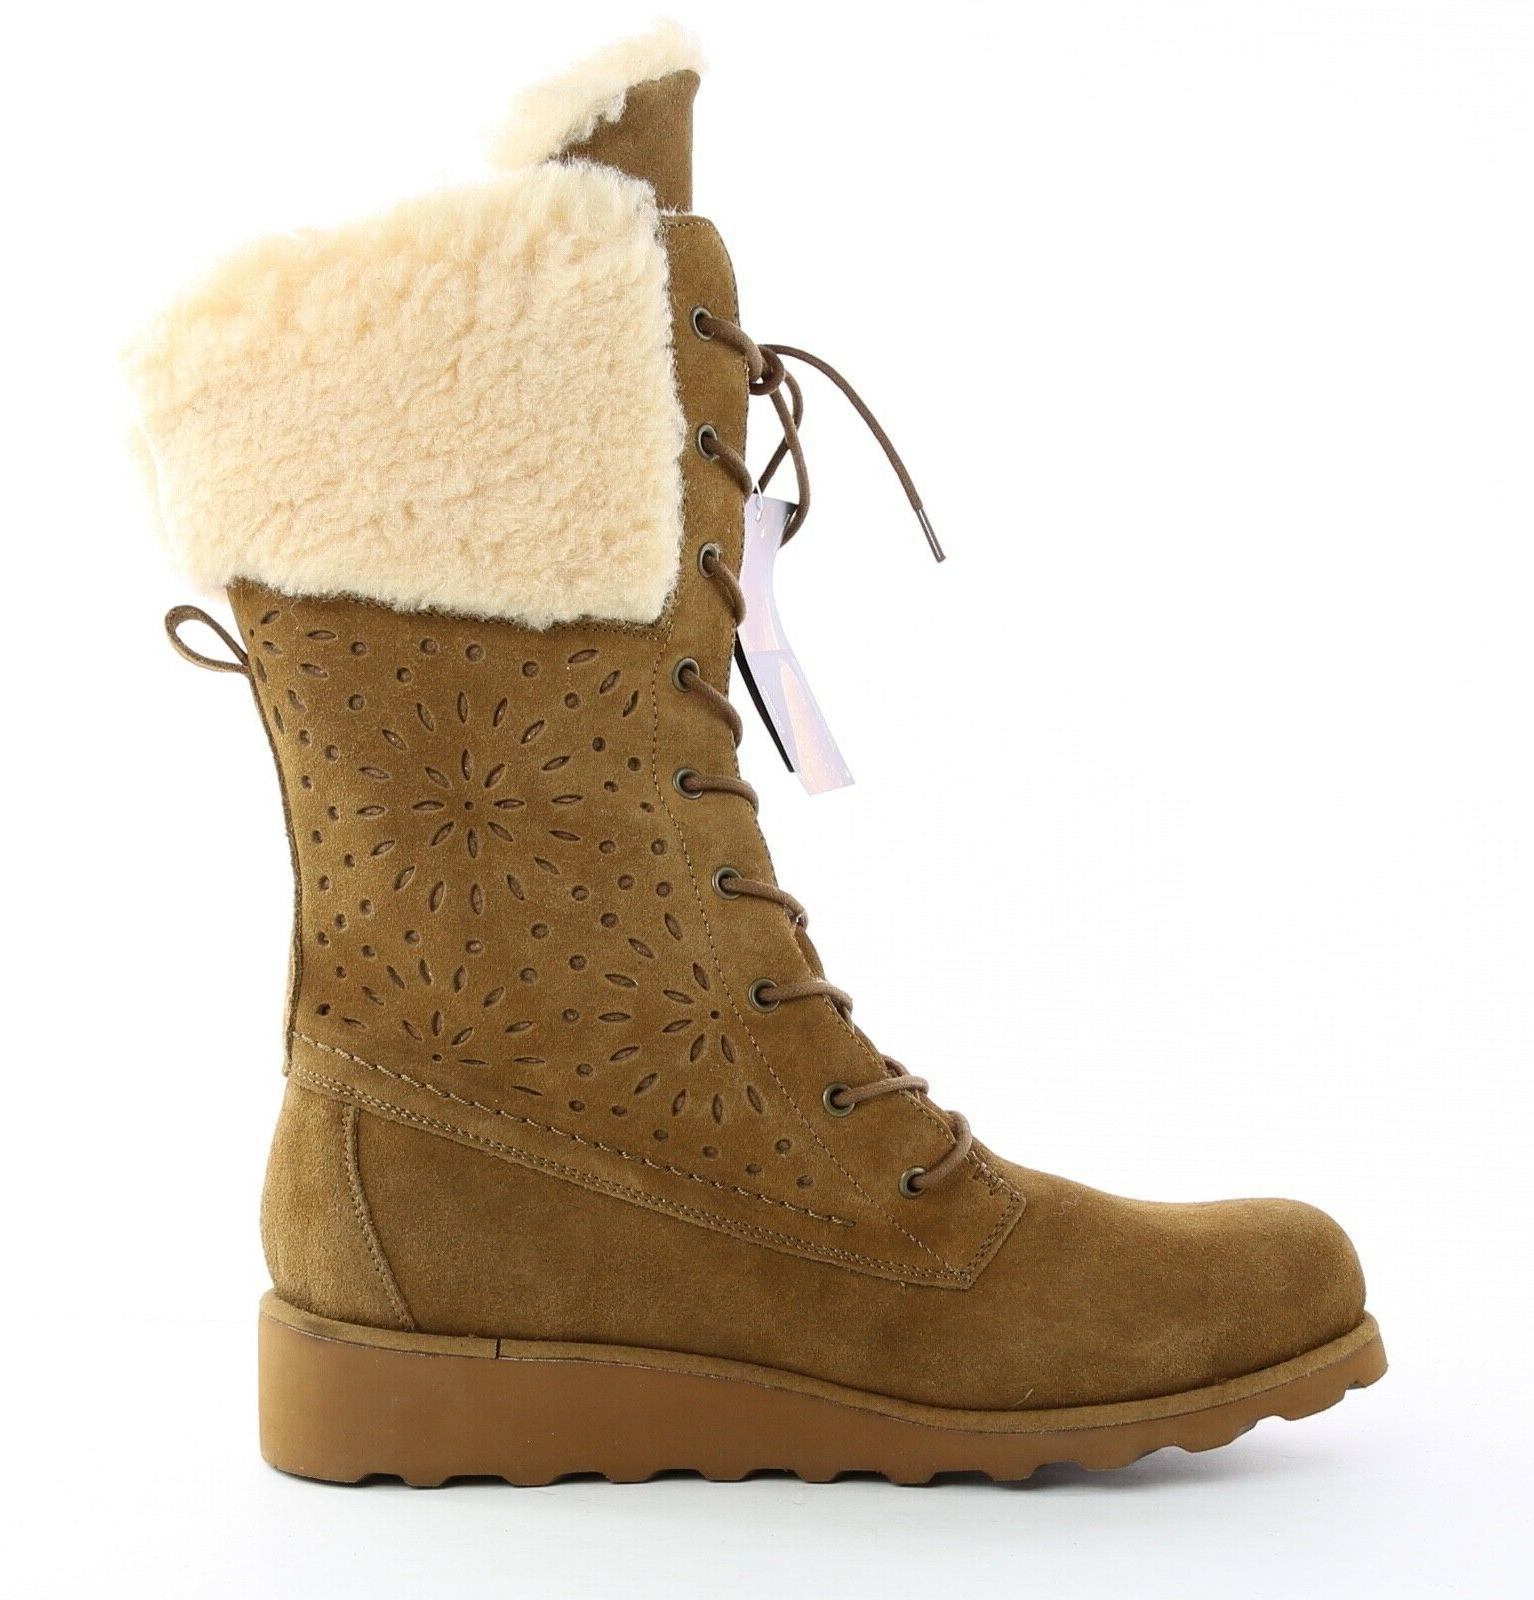 Womes Up Winter Boots Hickory, Size 12